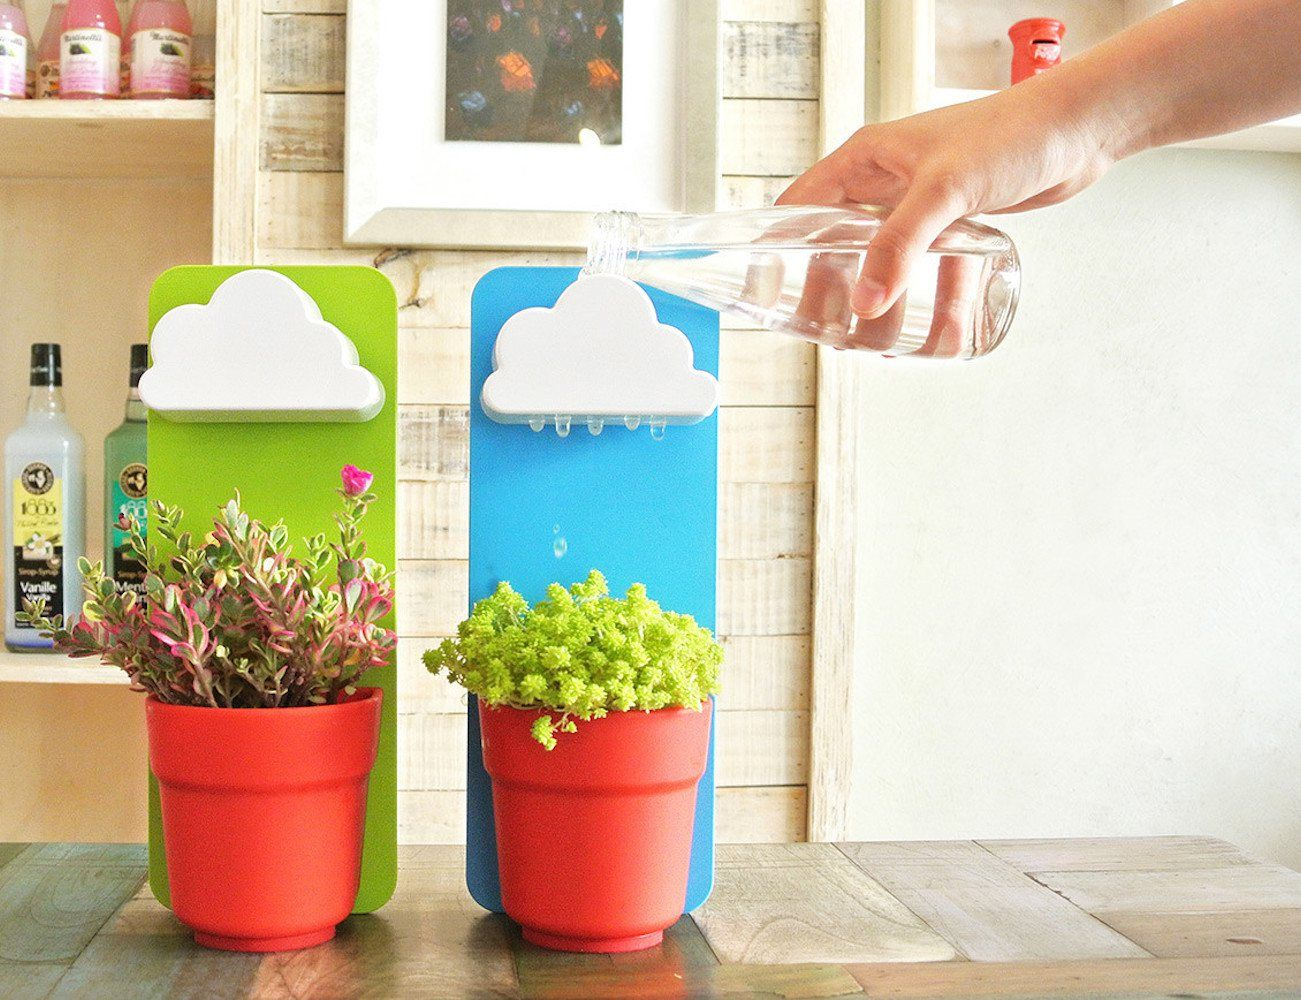 Rainy pot wall plant pot with cloud shaped watering basin indoor your beautiful indoor gardening wall plant pots have undergone a fantastic makeover by jeong seungbin at workwithnaturefo